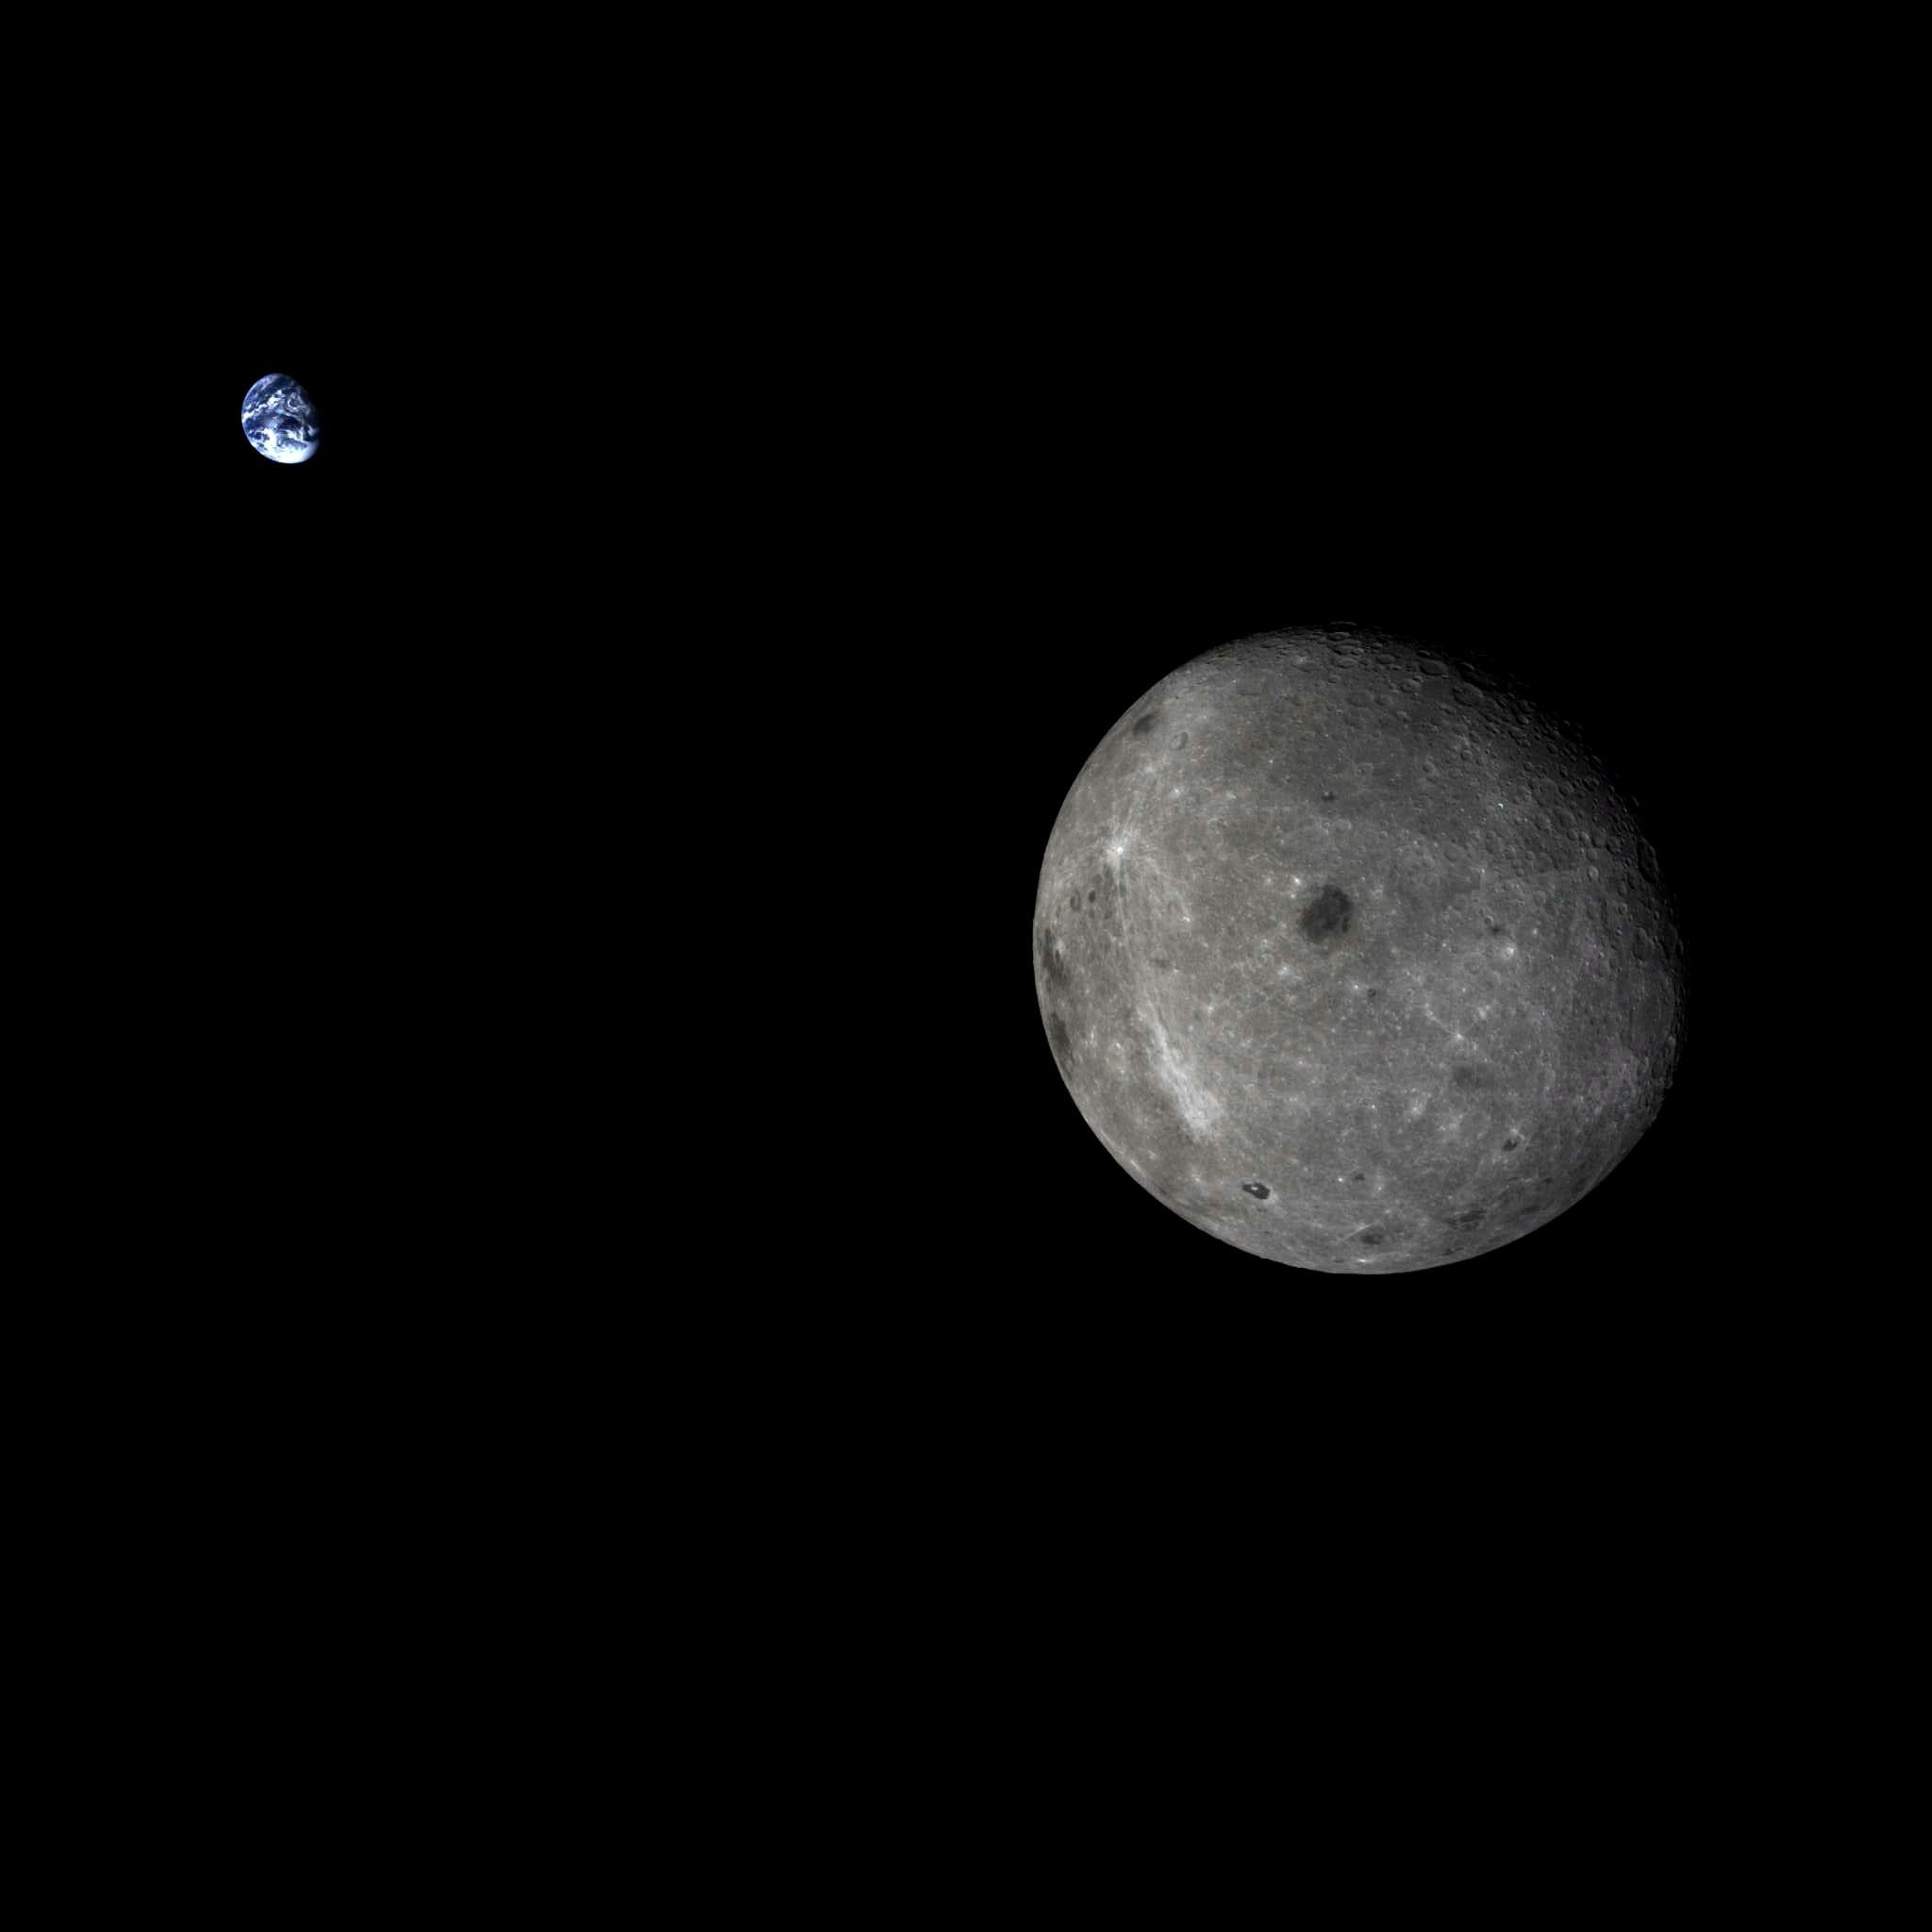 APOD: 2014 November 4 - Moon and Earth from Chang e 5 T1